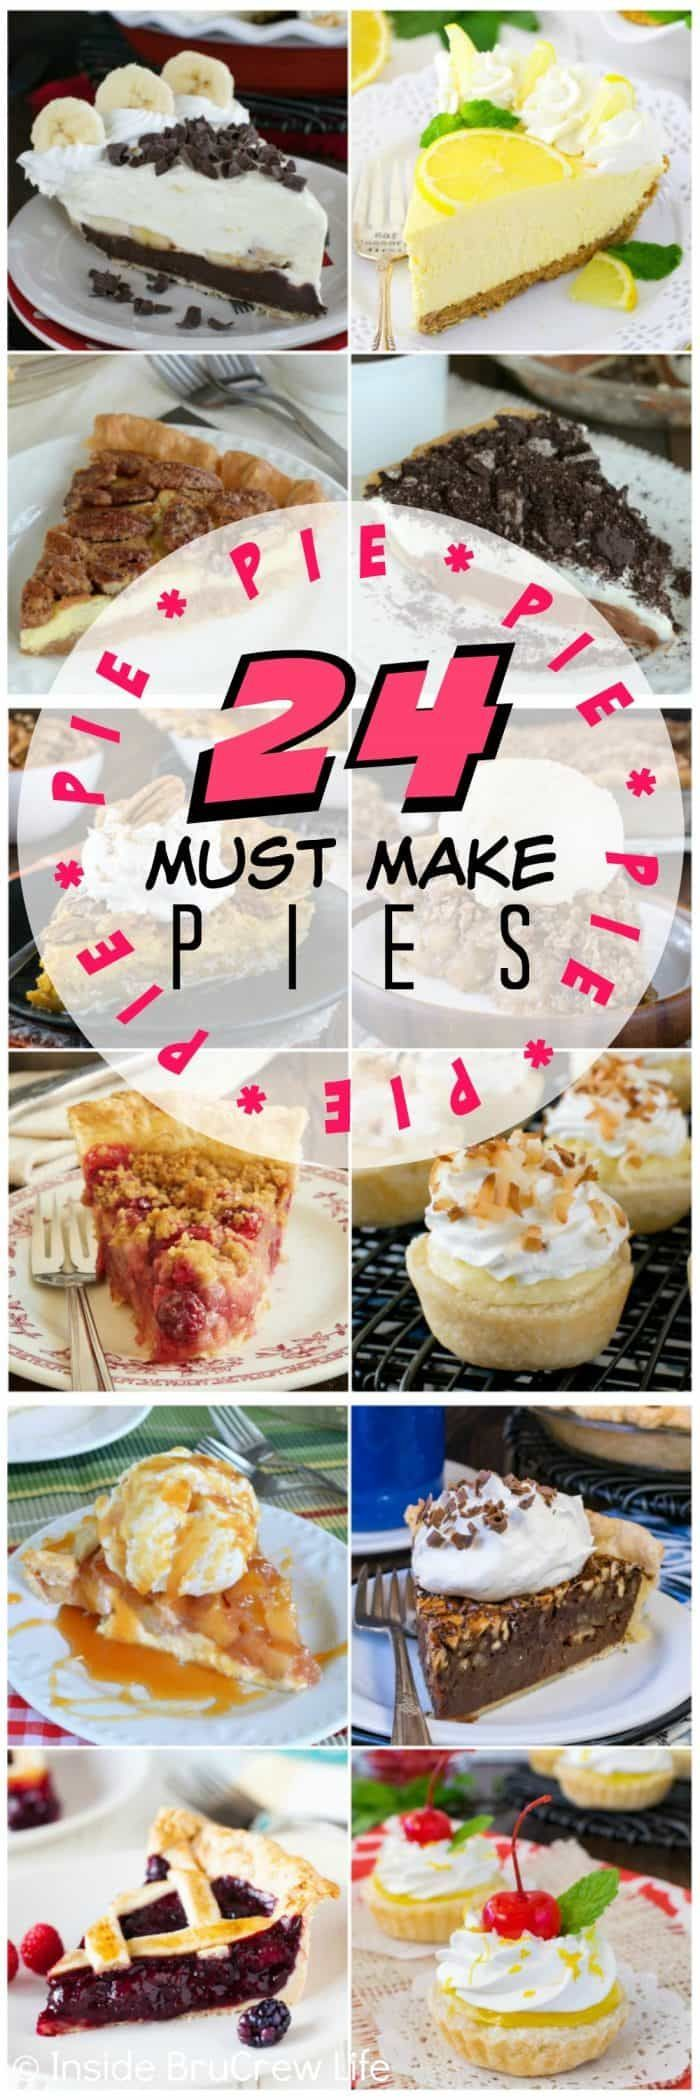 24 Must Make Pie Recipes - here are 24 of the best pies that would impress anyone at dinner. You will find fruit, cream, cheesecake, chocolate, and mini pie recipes that need to happen in your kitchen. #pie #thanksgiving #dessert